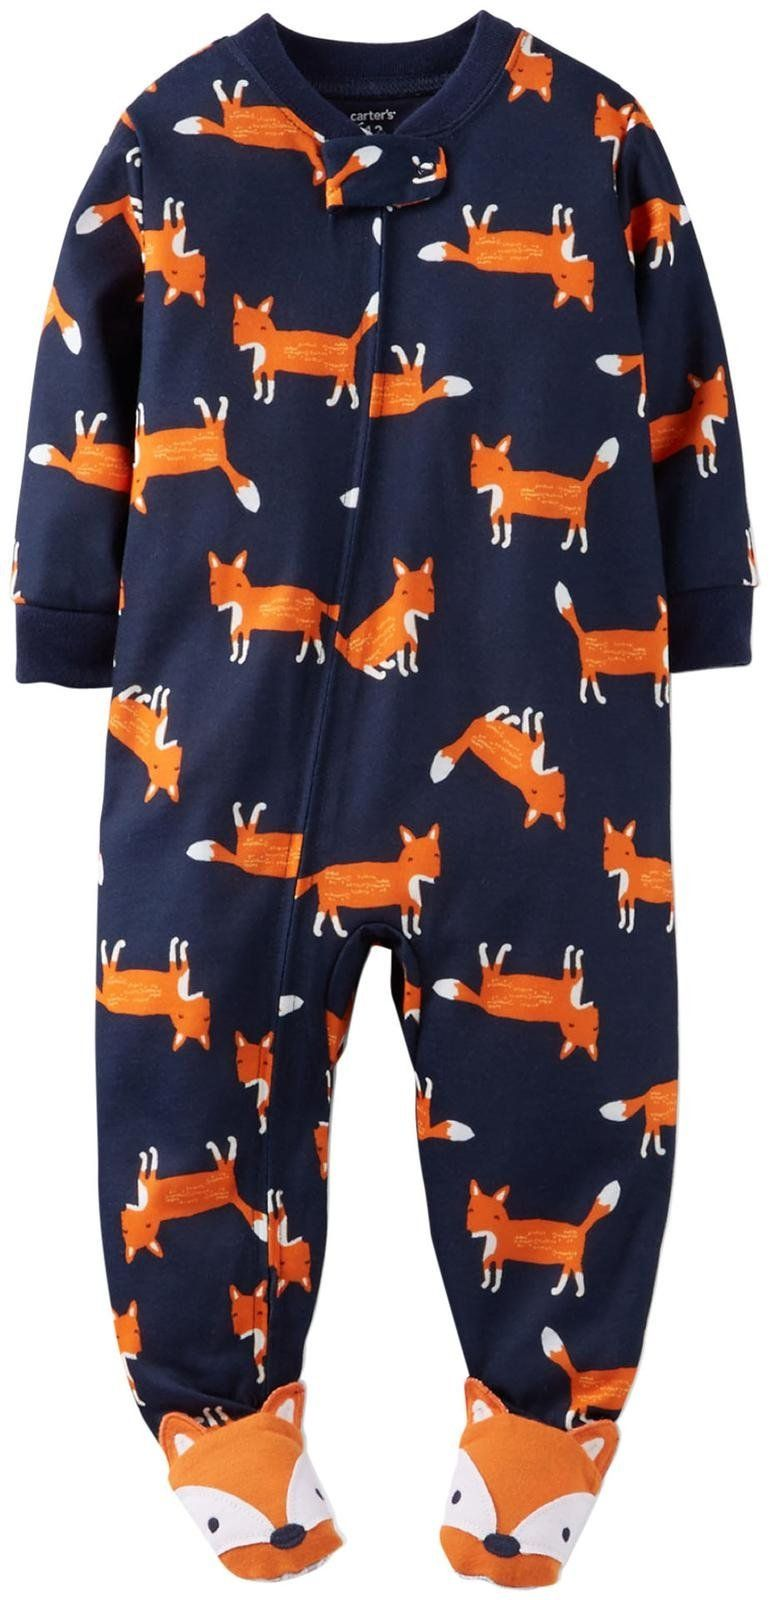 Carter's Little Boys' Jersey Footie (Toddler/Kid) - Foxes - 5T